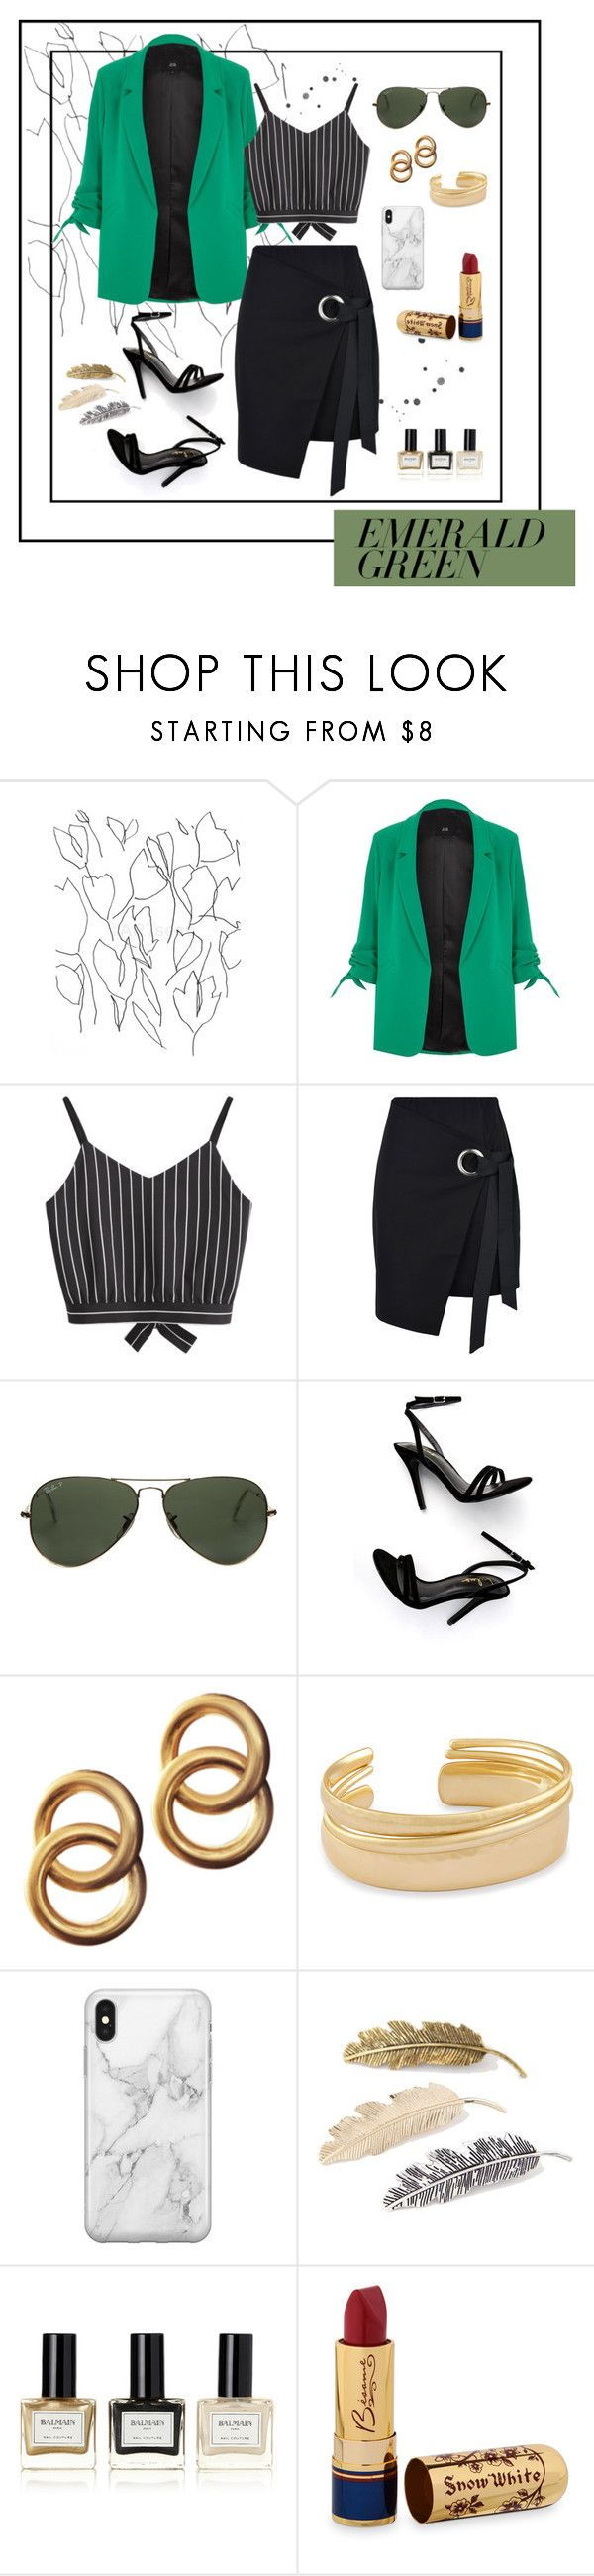 """Emerald City: Pops of Green (Contest)"" by phoebewj ❤ liked on Polyvore featuring Blume, River Island, George J. Love, Ray-Ban, LULUS, Laura Lombardi, Kendra Scott, Recover, Balmain and Bésame"